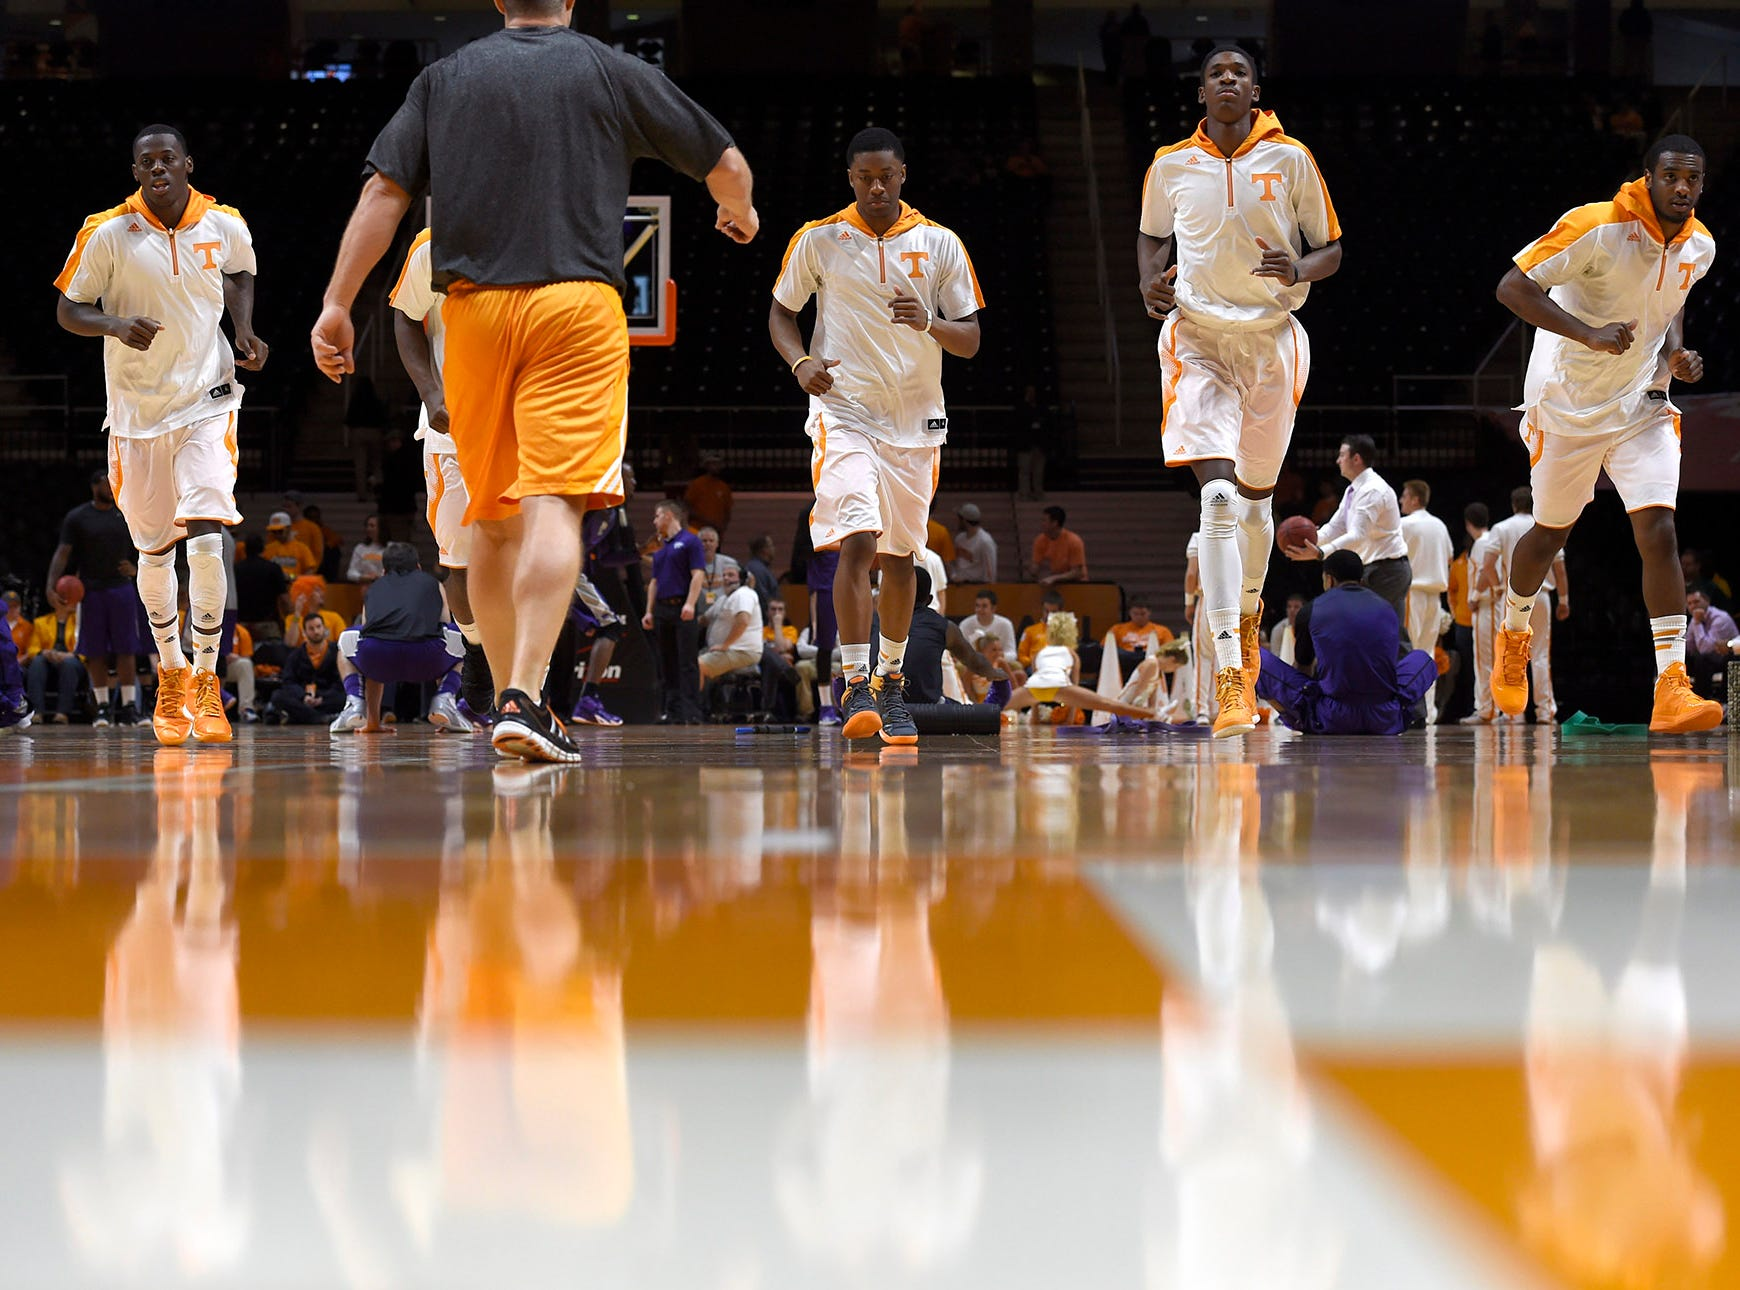 Tennessee players warm up before their NCAA college basketball game against Kansas State at Thompson-Boling Arena in Knoxville, Tenn., Saturday, Dec. 6, 2014.